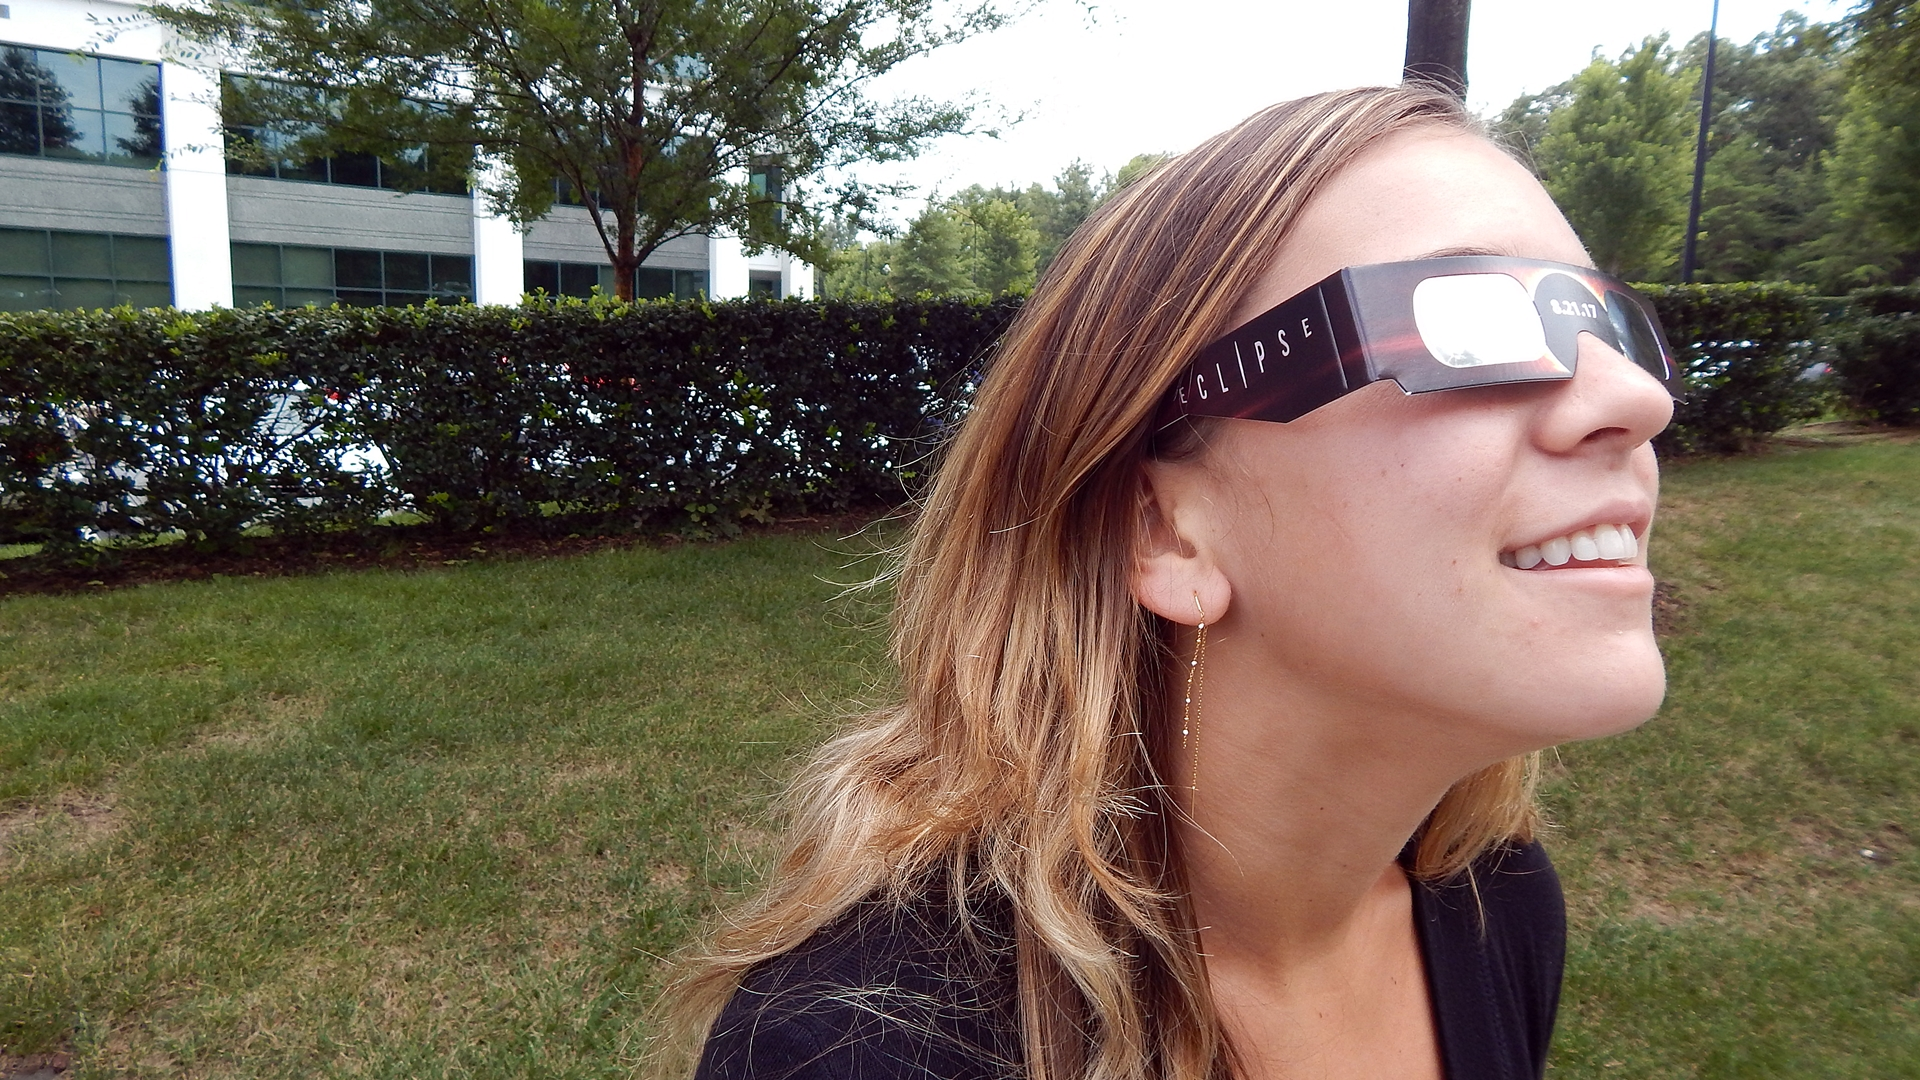 Make sure to wear protective glasses if you decide to look directly at the solar eclipse, Galen Grayson, MD, an ophthalmologist with Carolinas HealthCare System says, in order to protect your vision.